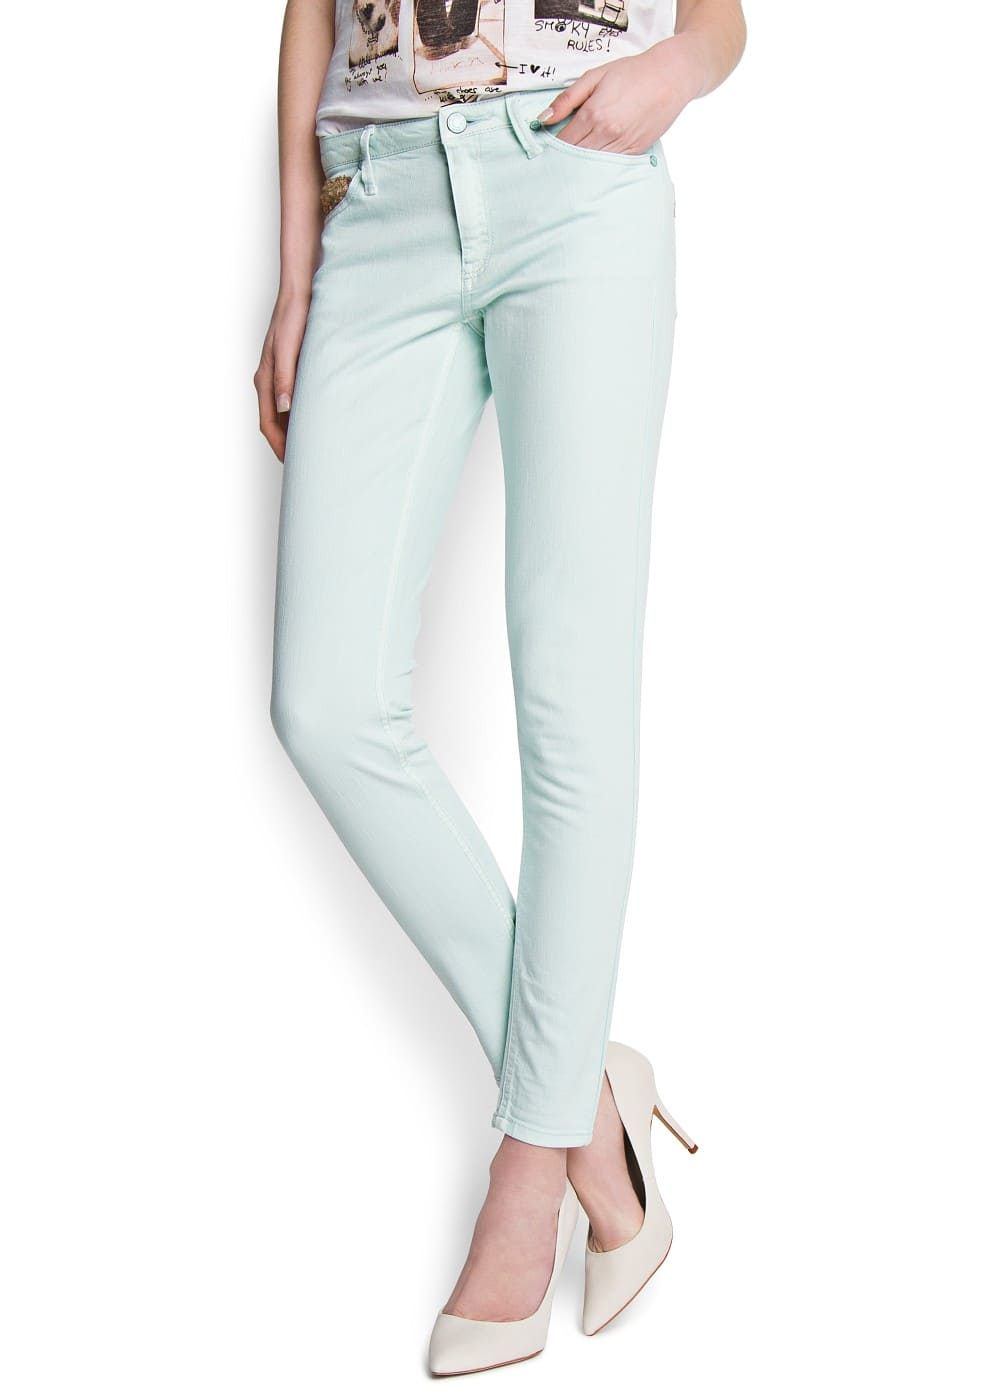 Sequin slim-fit jeans